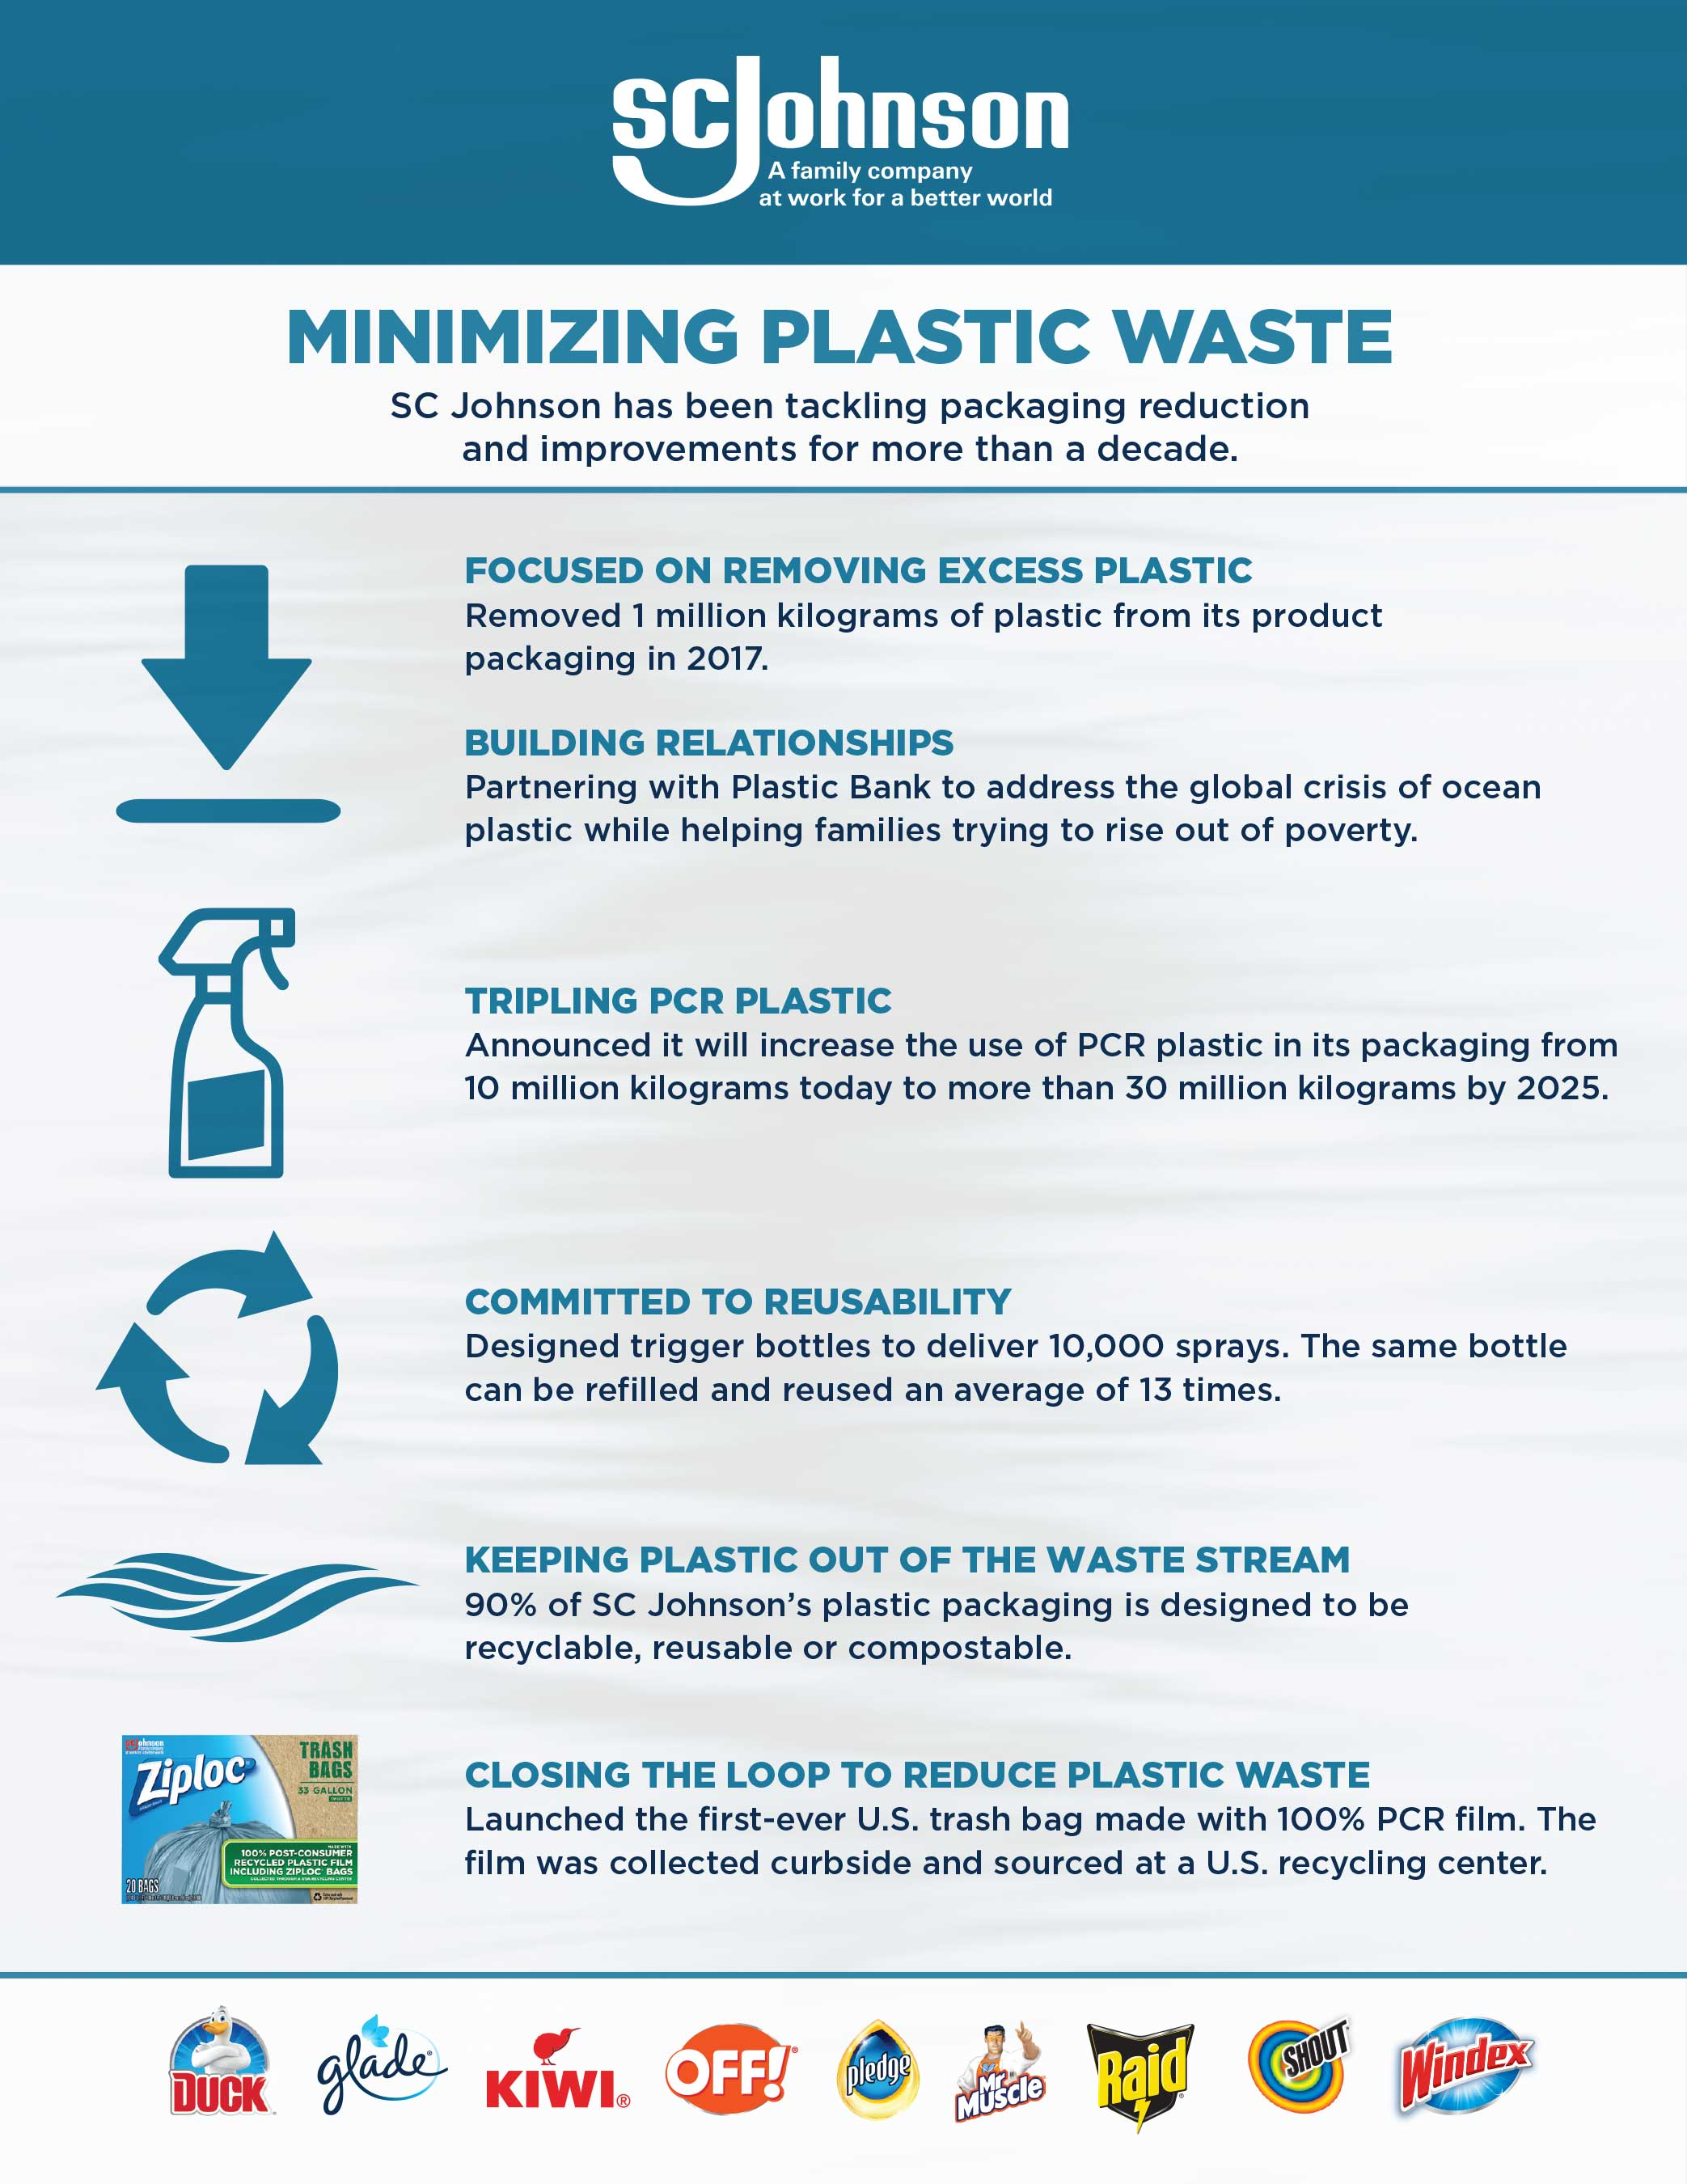 SC Johnson: Minimizing Plastic Waste